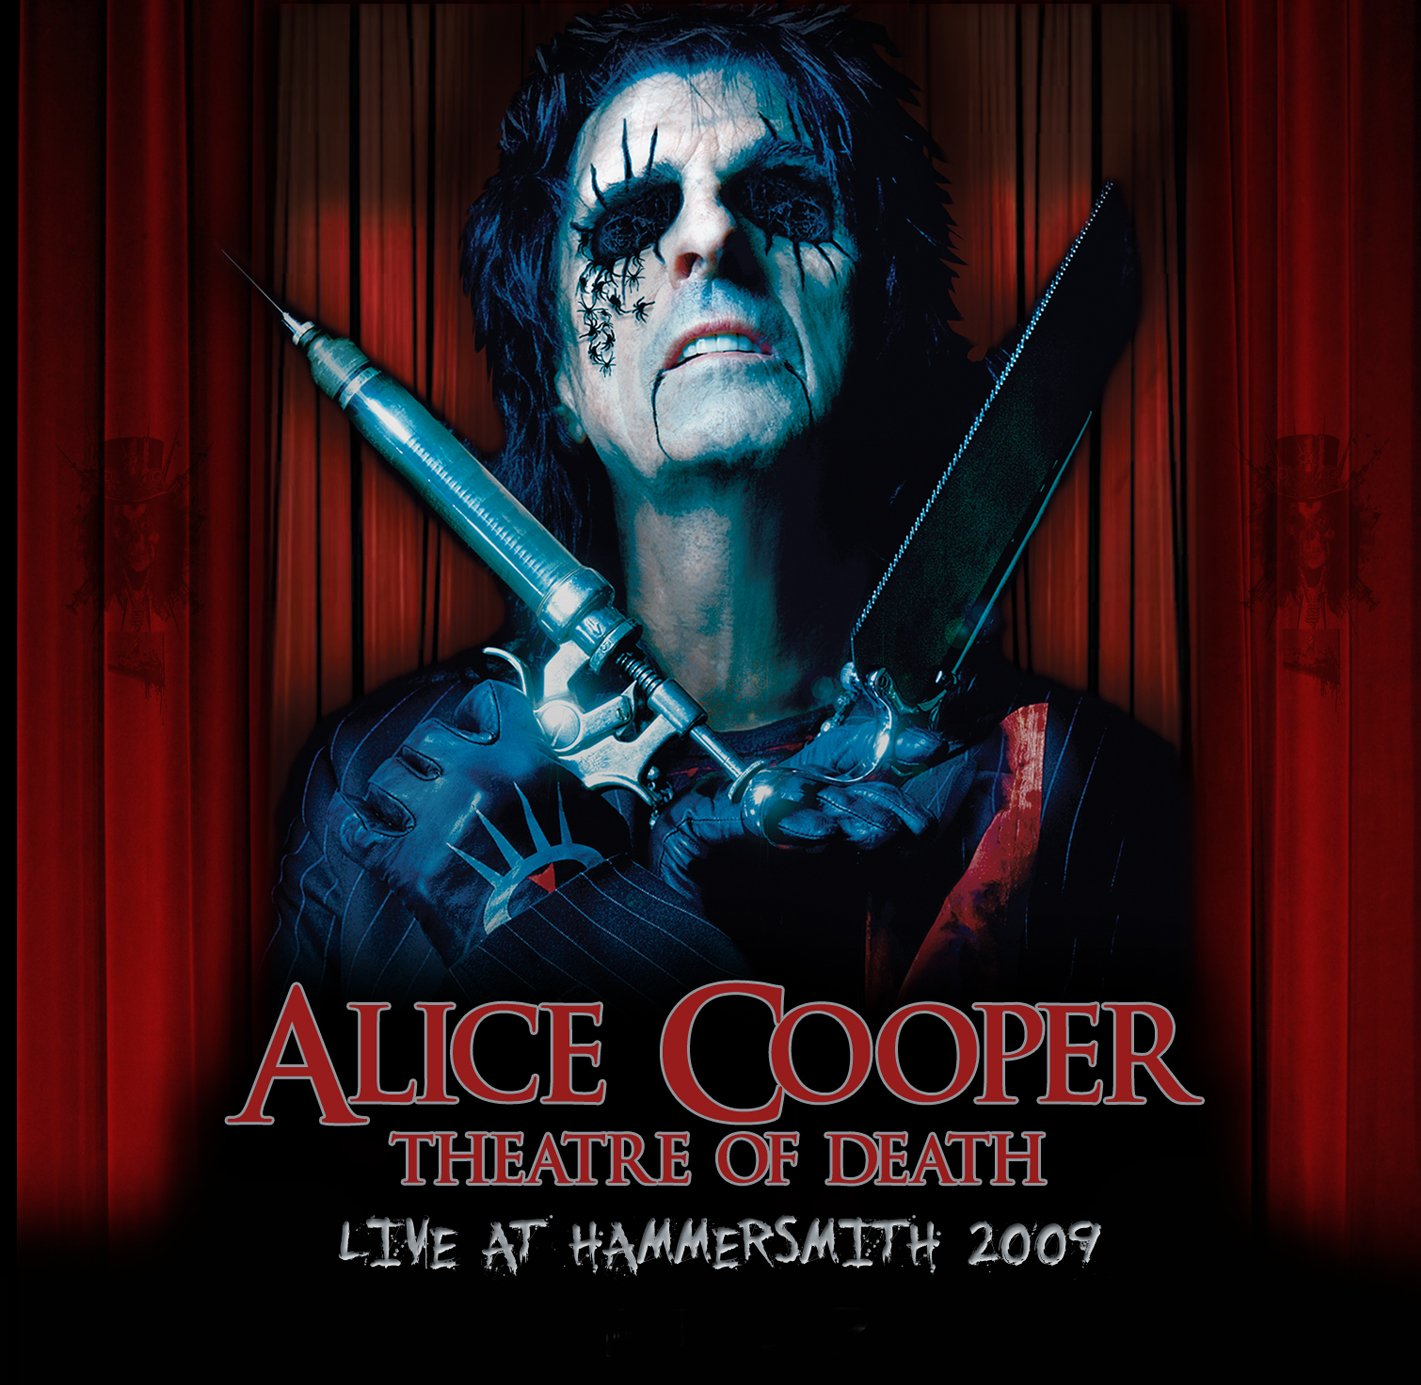 Theatre Of Death - Live At Hammersmith 2009 (CD/DVD) by Bigger Picture